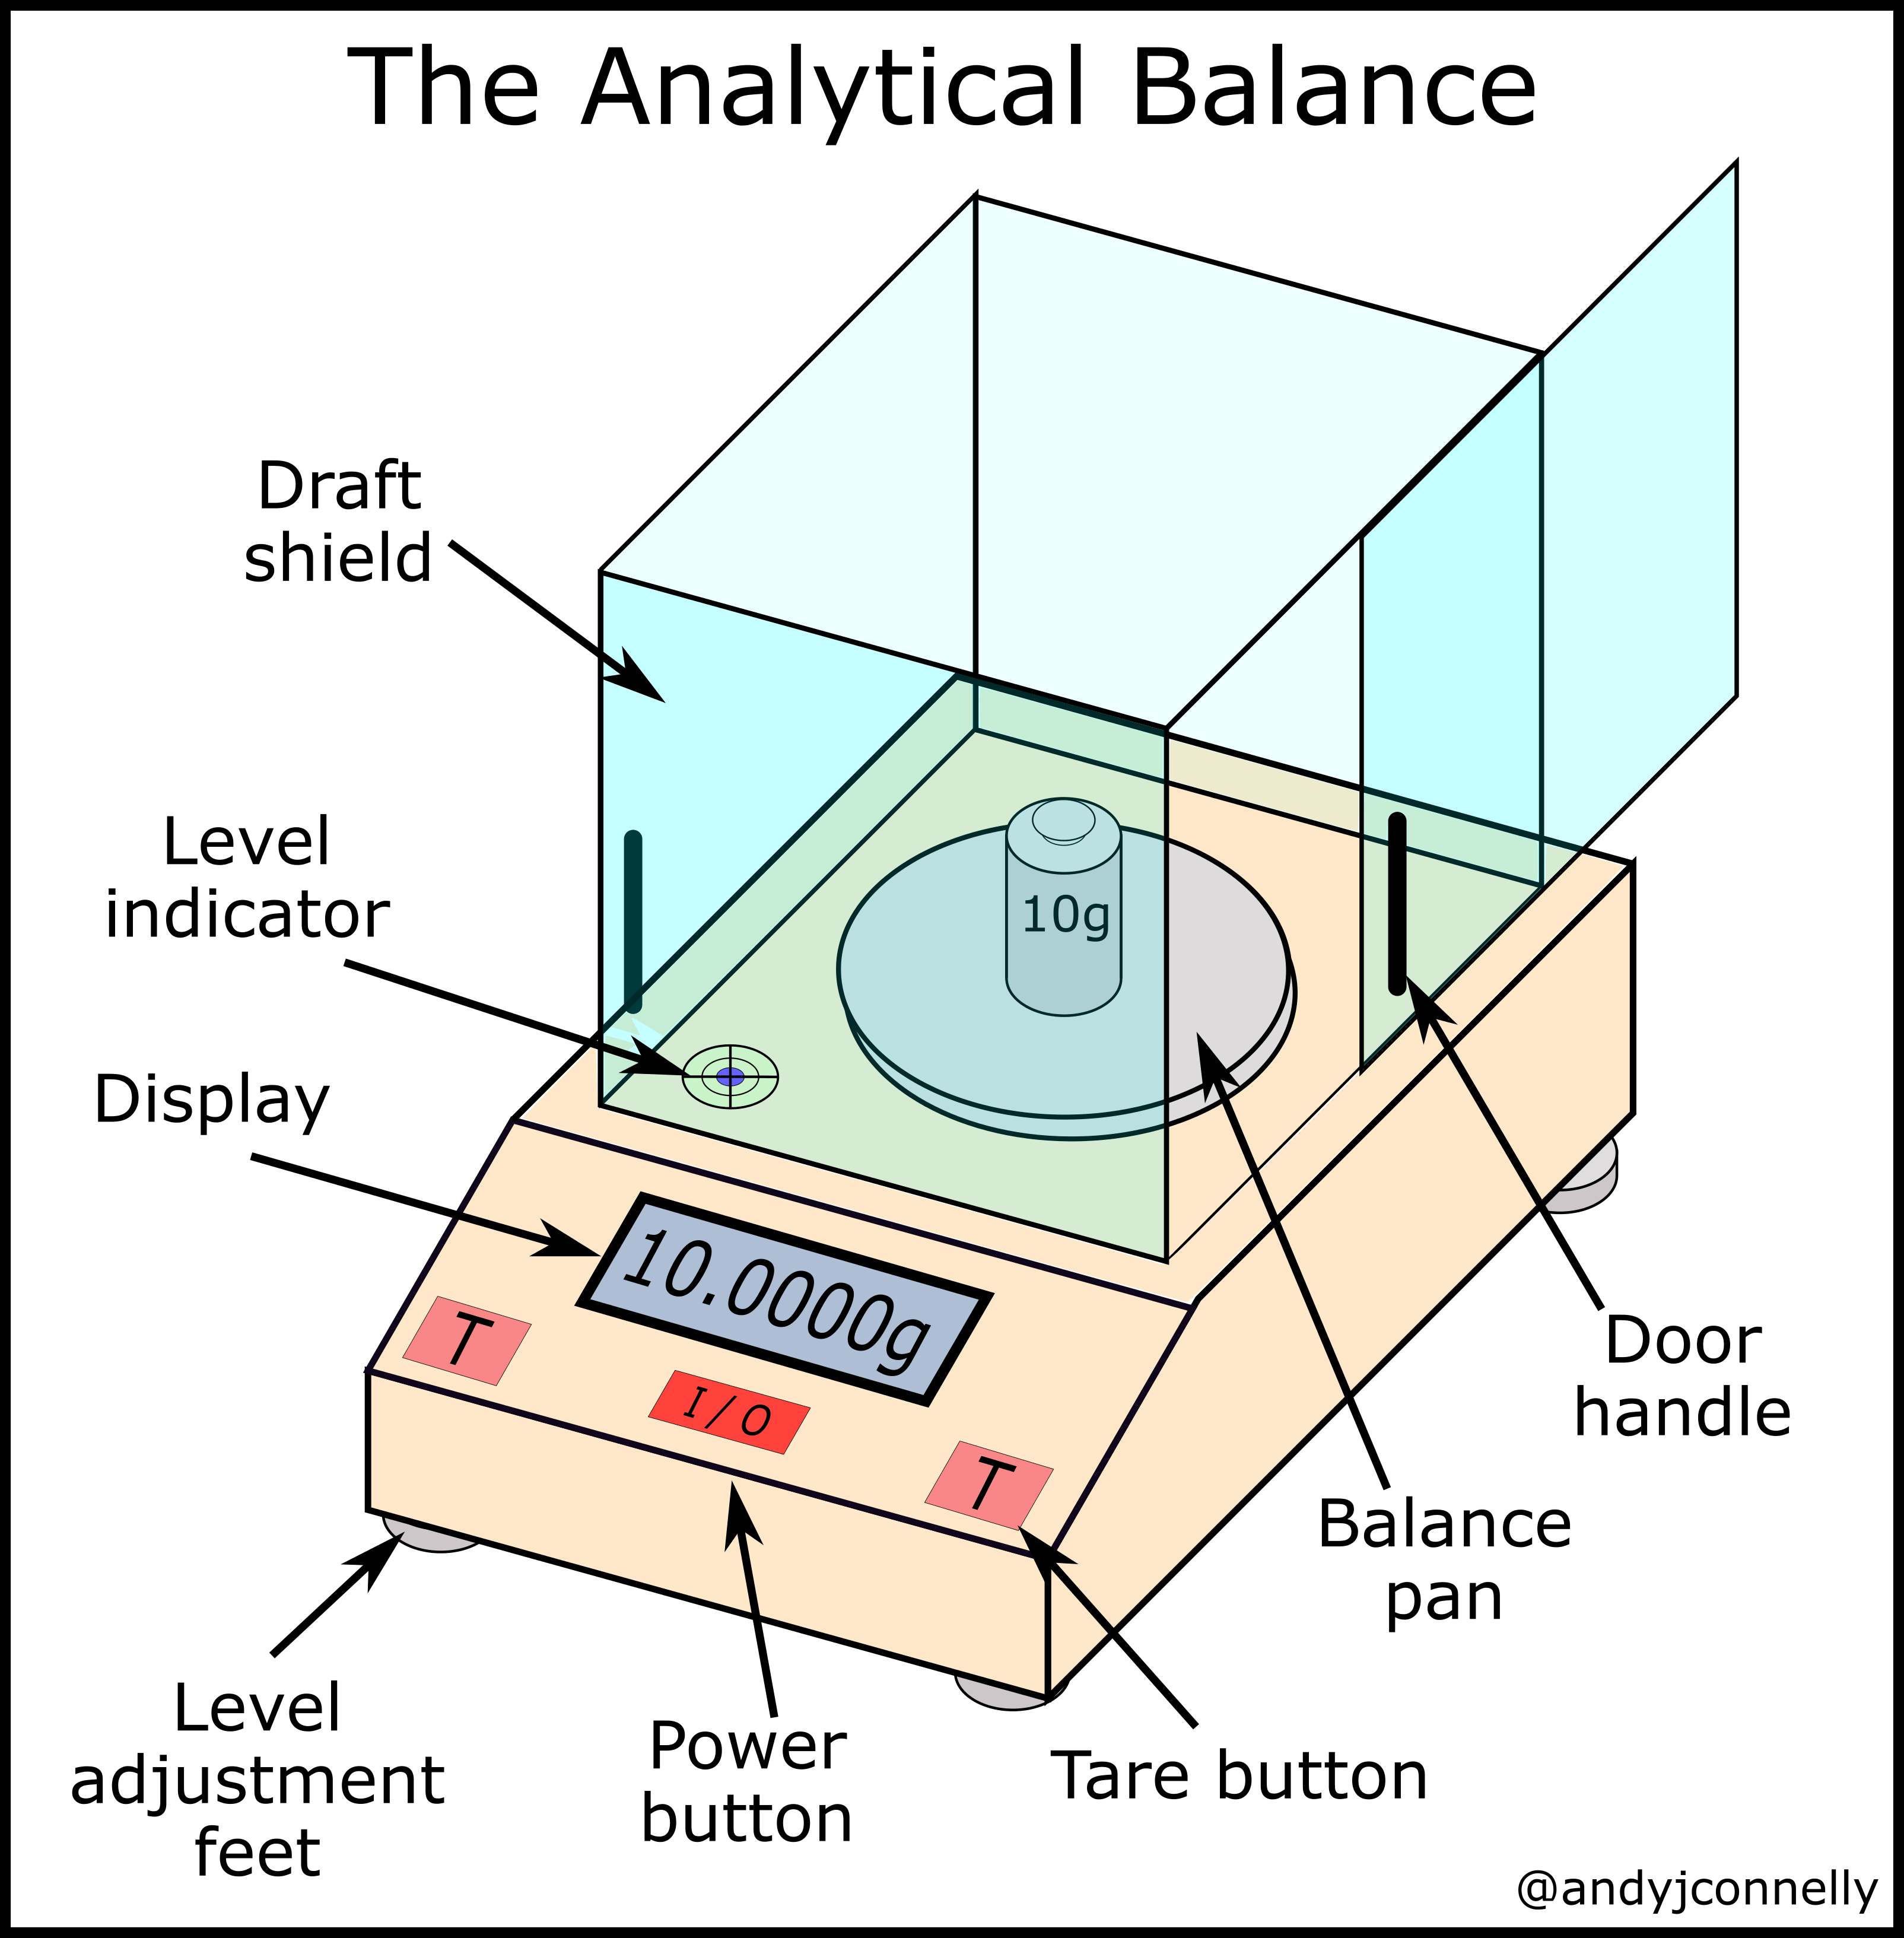 The Laboratory Balance A Practical Guide Andy Connelly